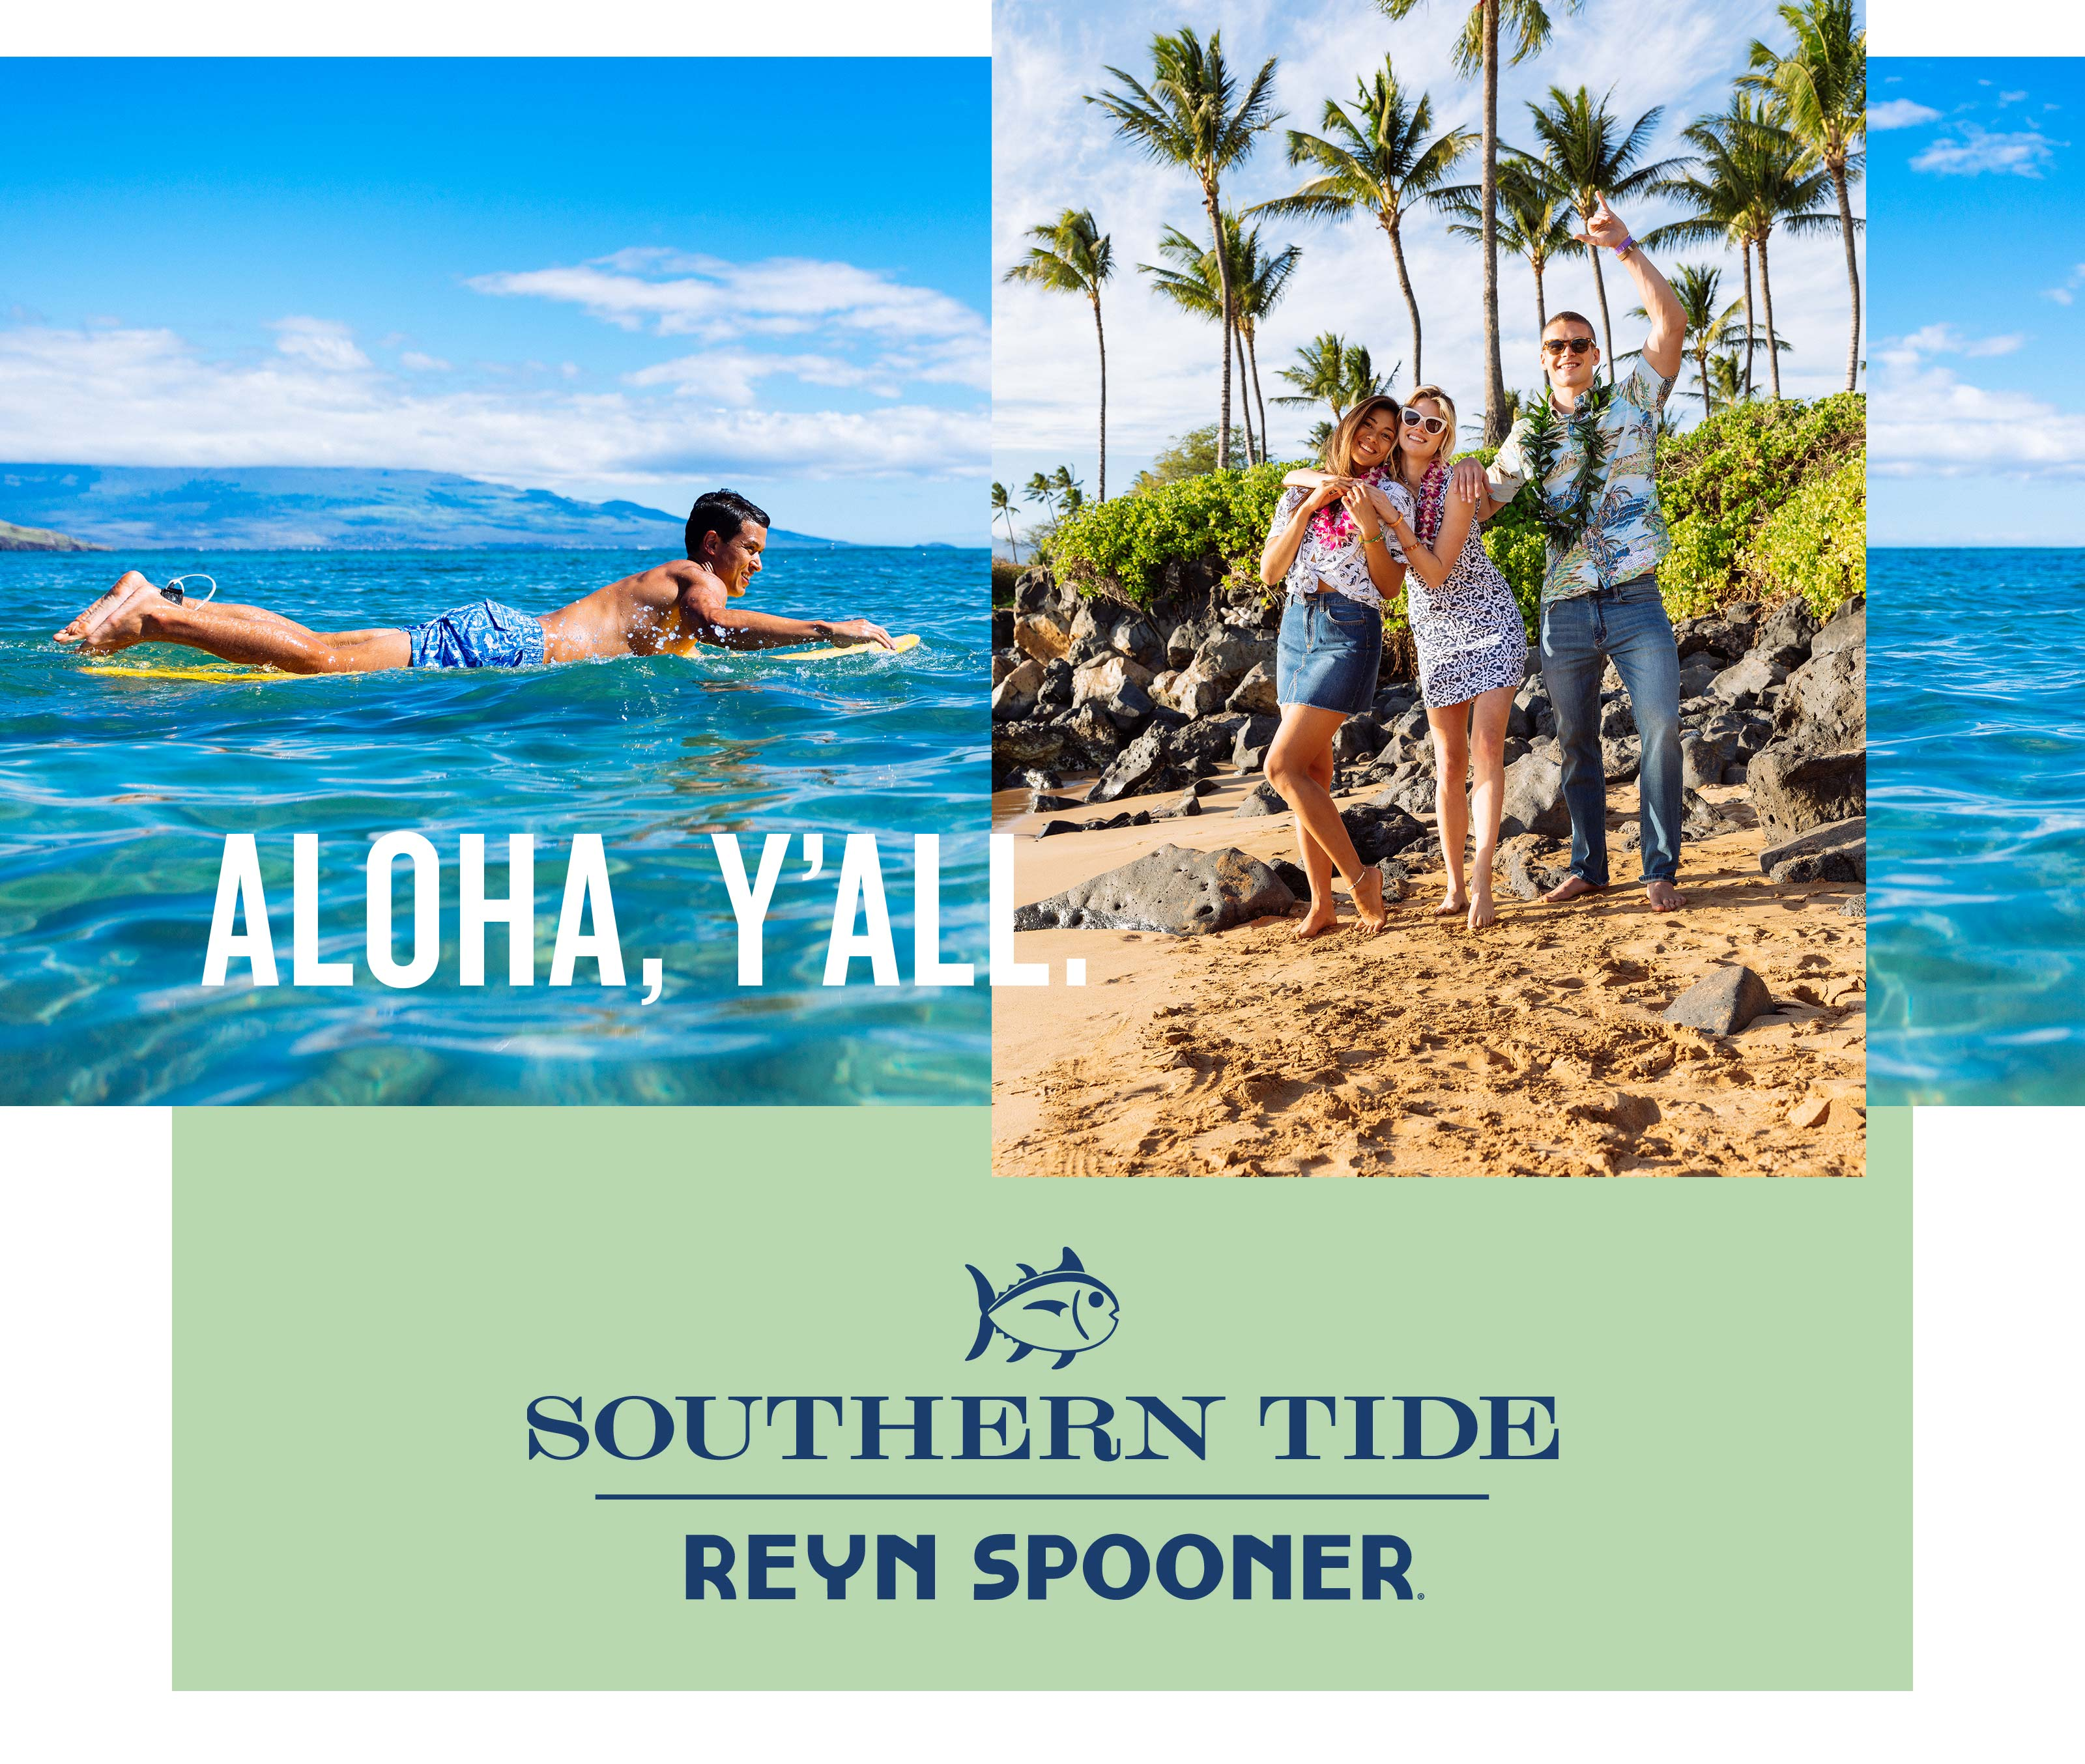 Reyn Spooner and Southern Tide Collaboration